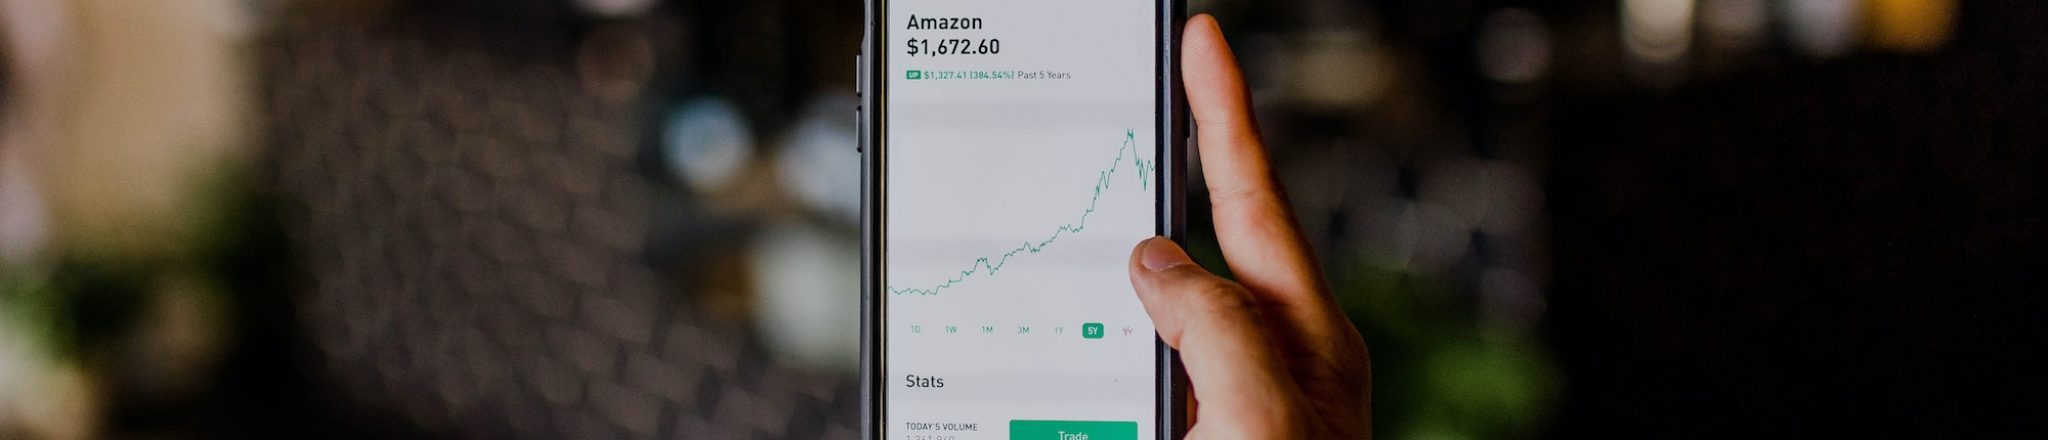 Looking at amazon stock on best investment apps